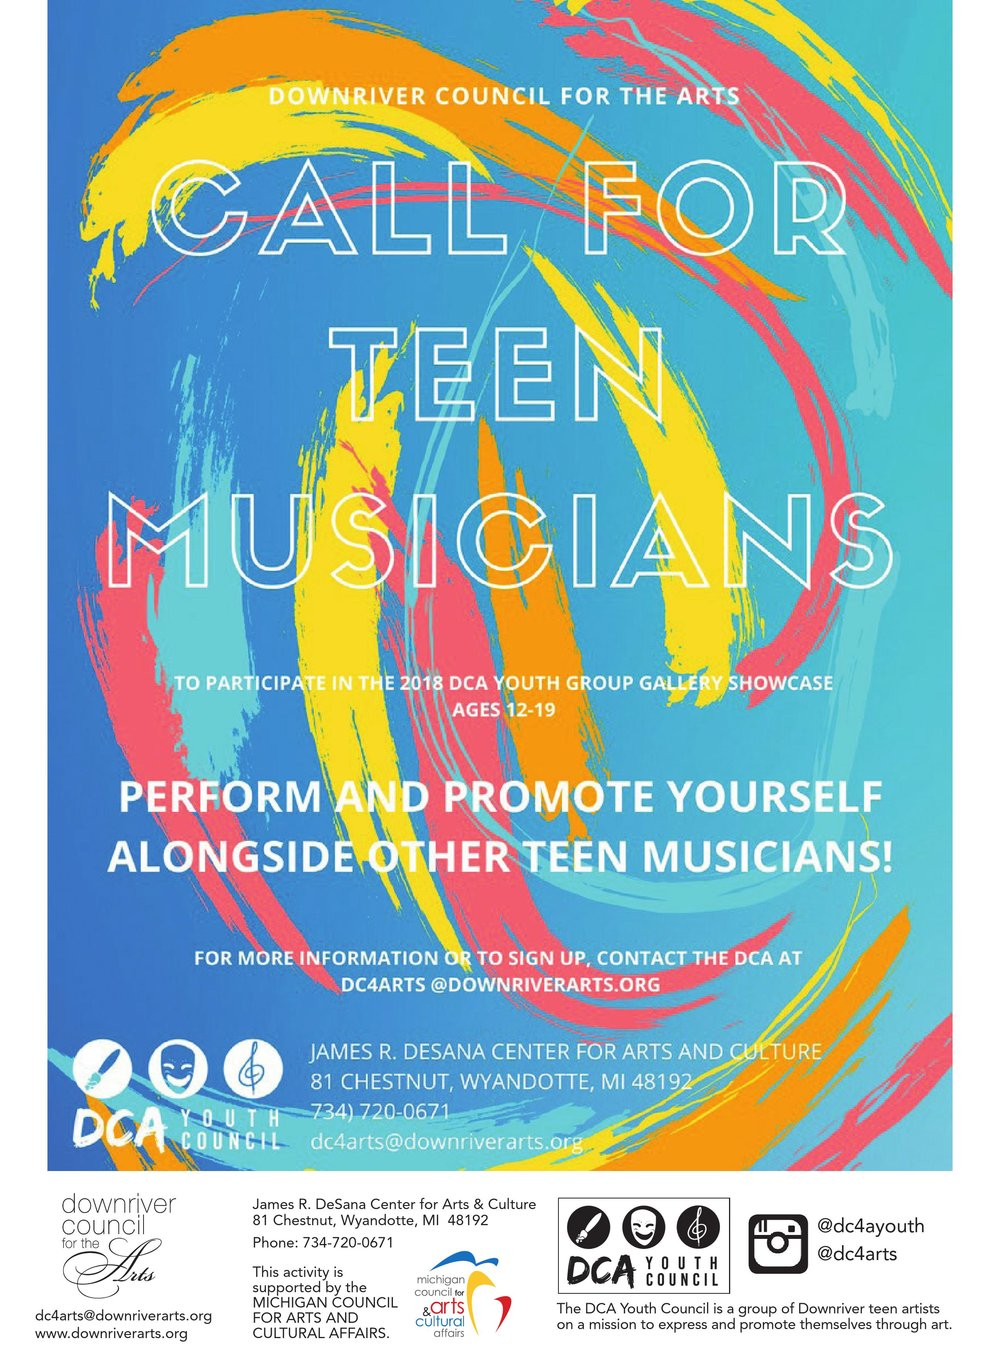 Call for artists and musicians_00002.jpg